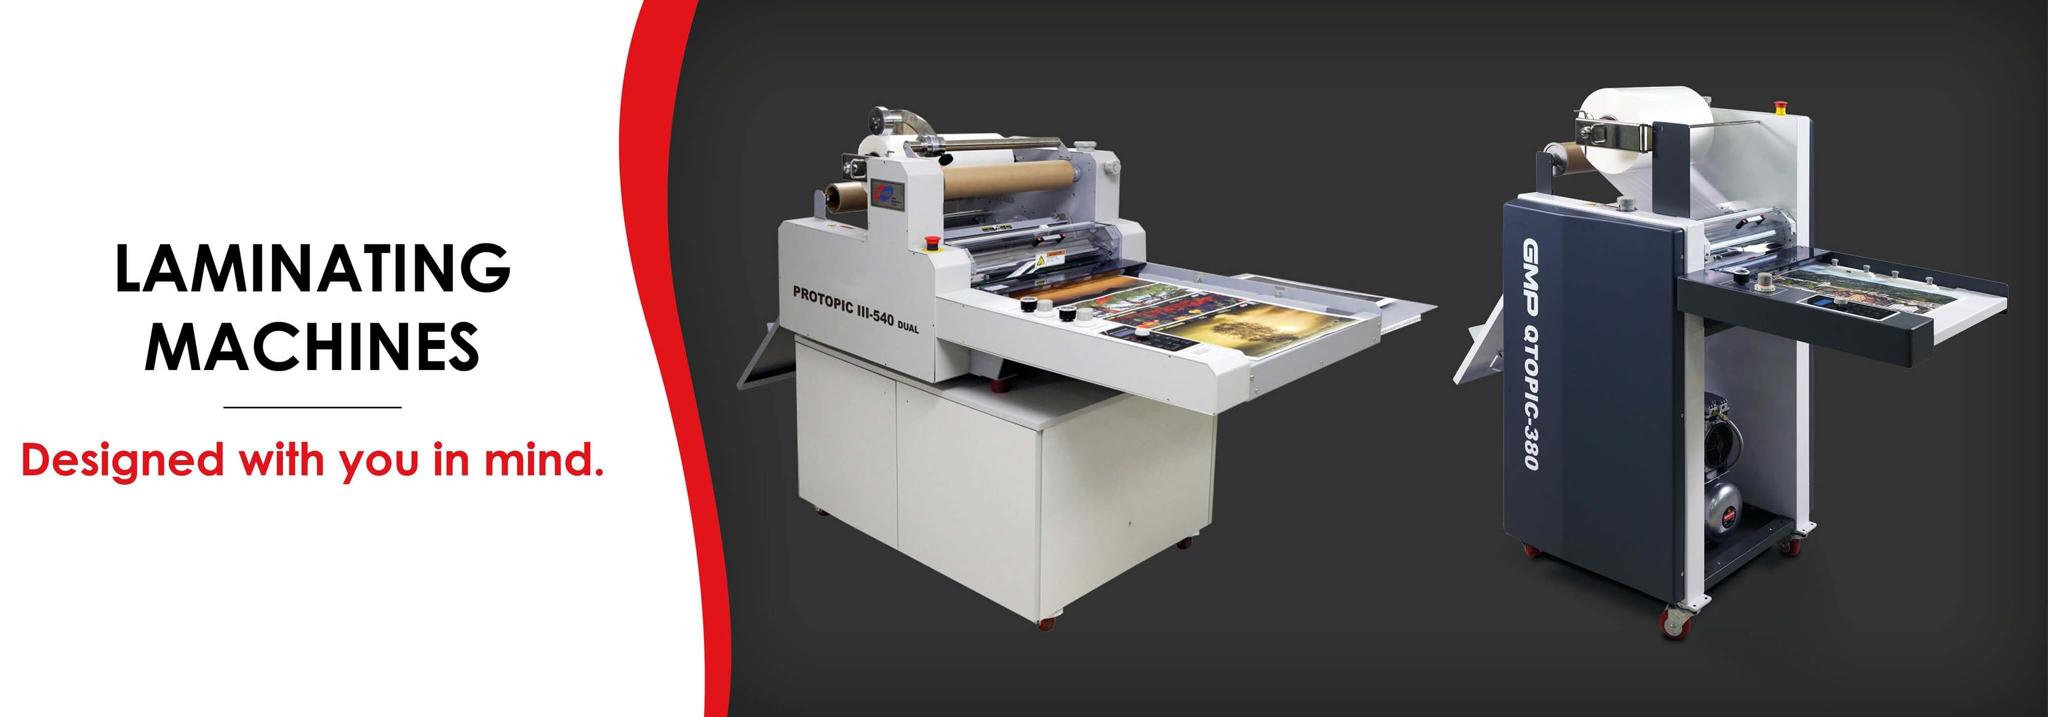 Laminating machine supplier